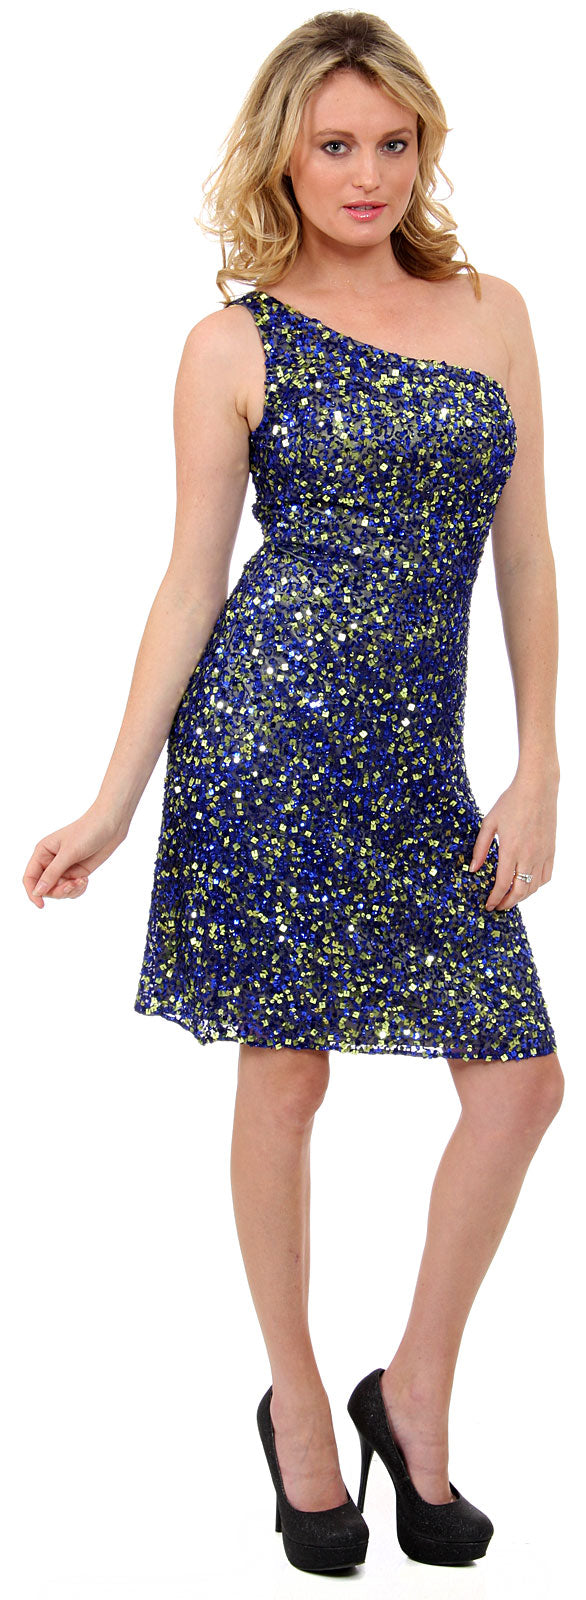 Image of Hand Beaded And Sequined One Shoulder Short Dress in Royal Blue/Yellow